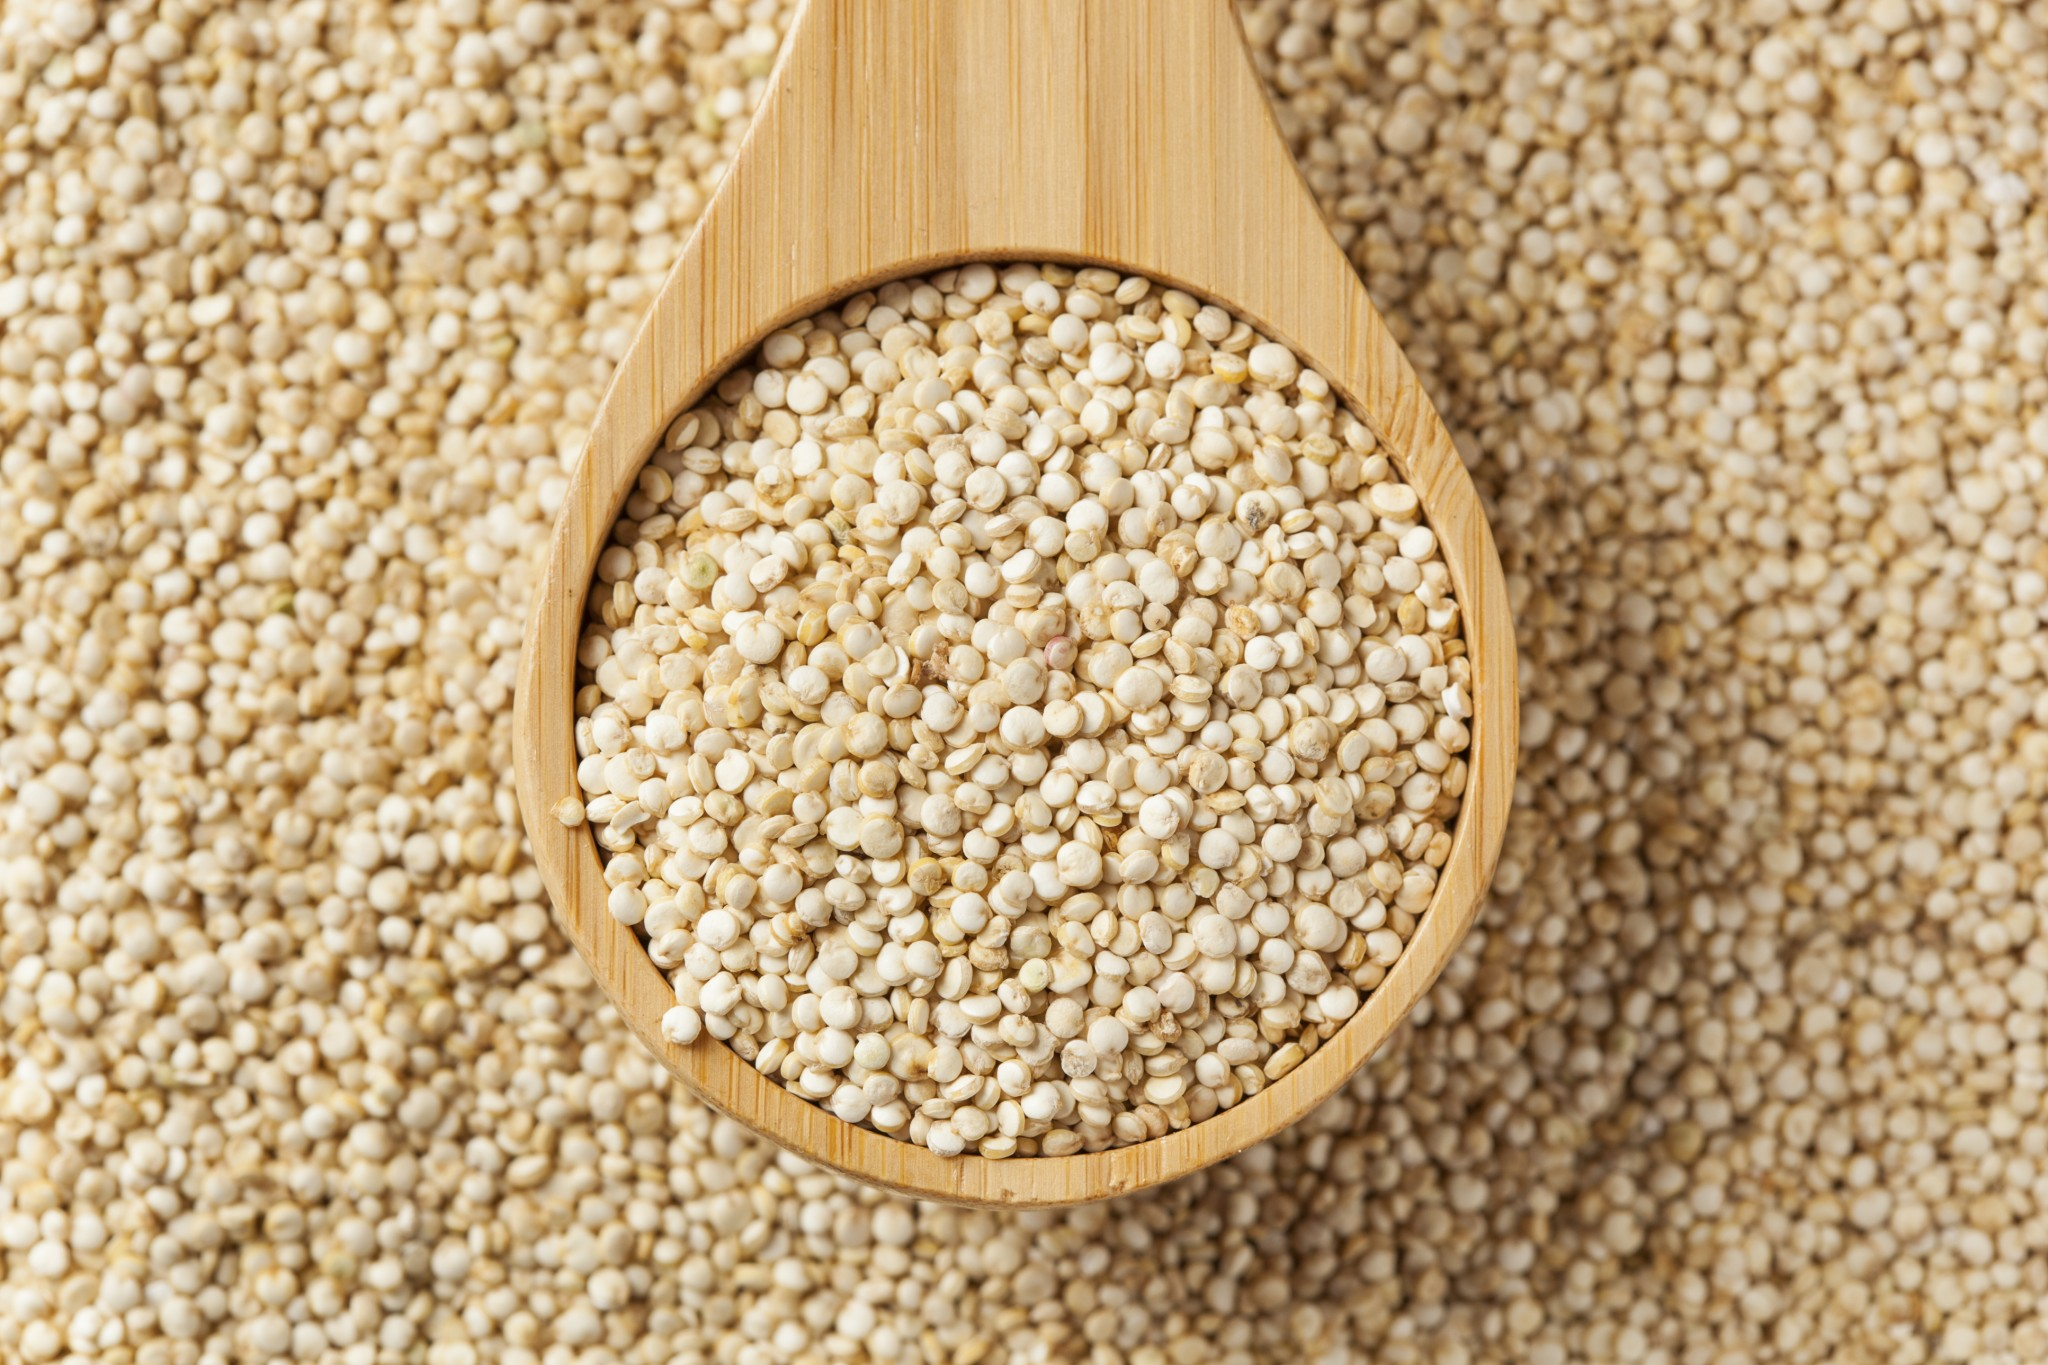 Raw Organic Quinoa Seeds